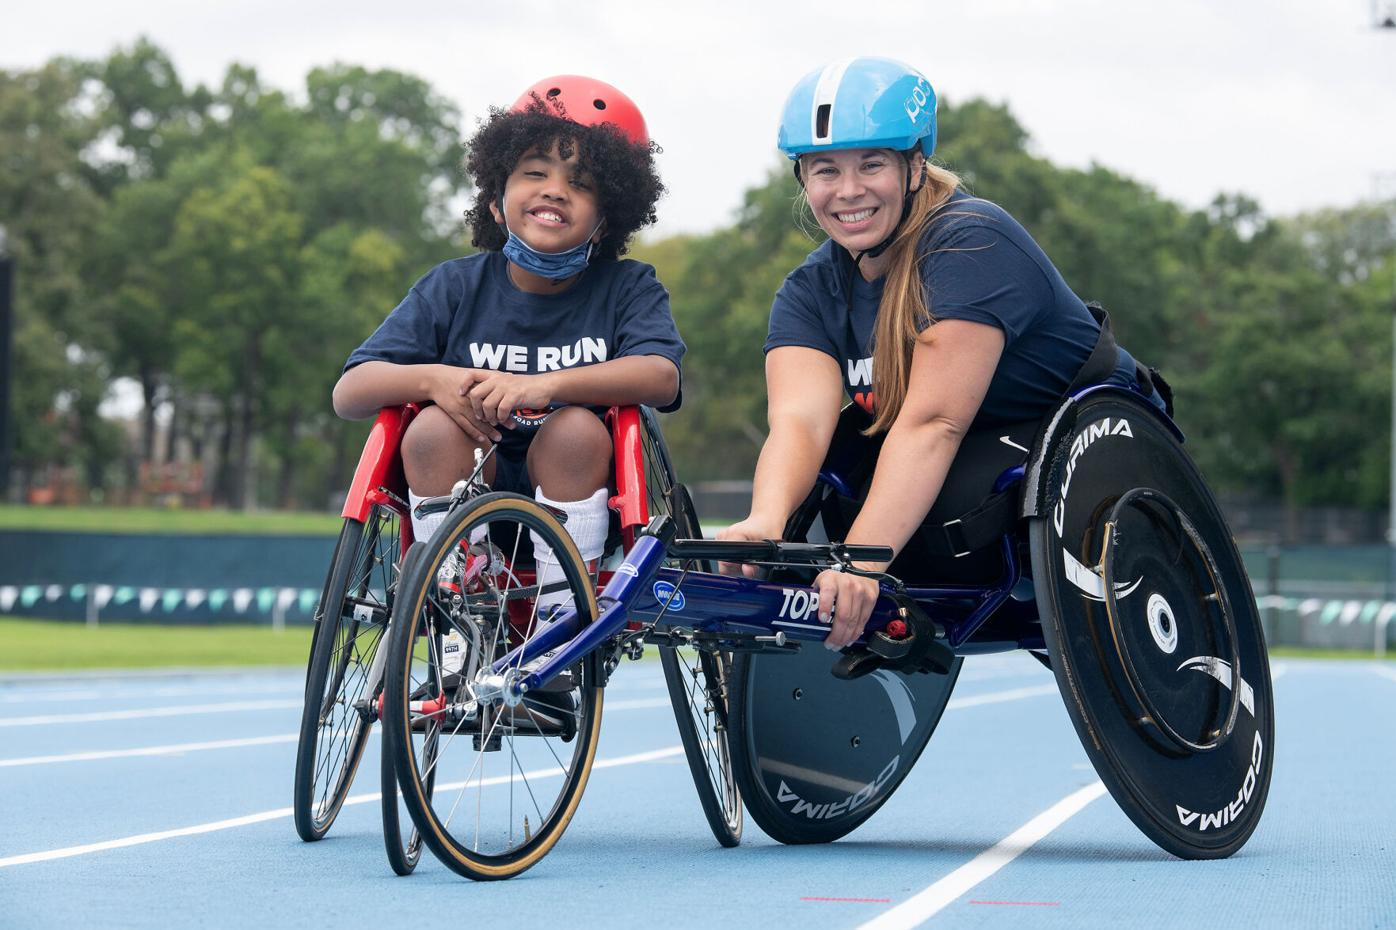 Awesome day as Paralympic veteran joins kids and their wheelchairs for long-awaited in-person workout